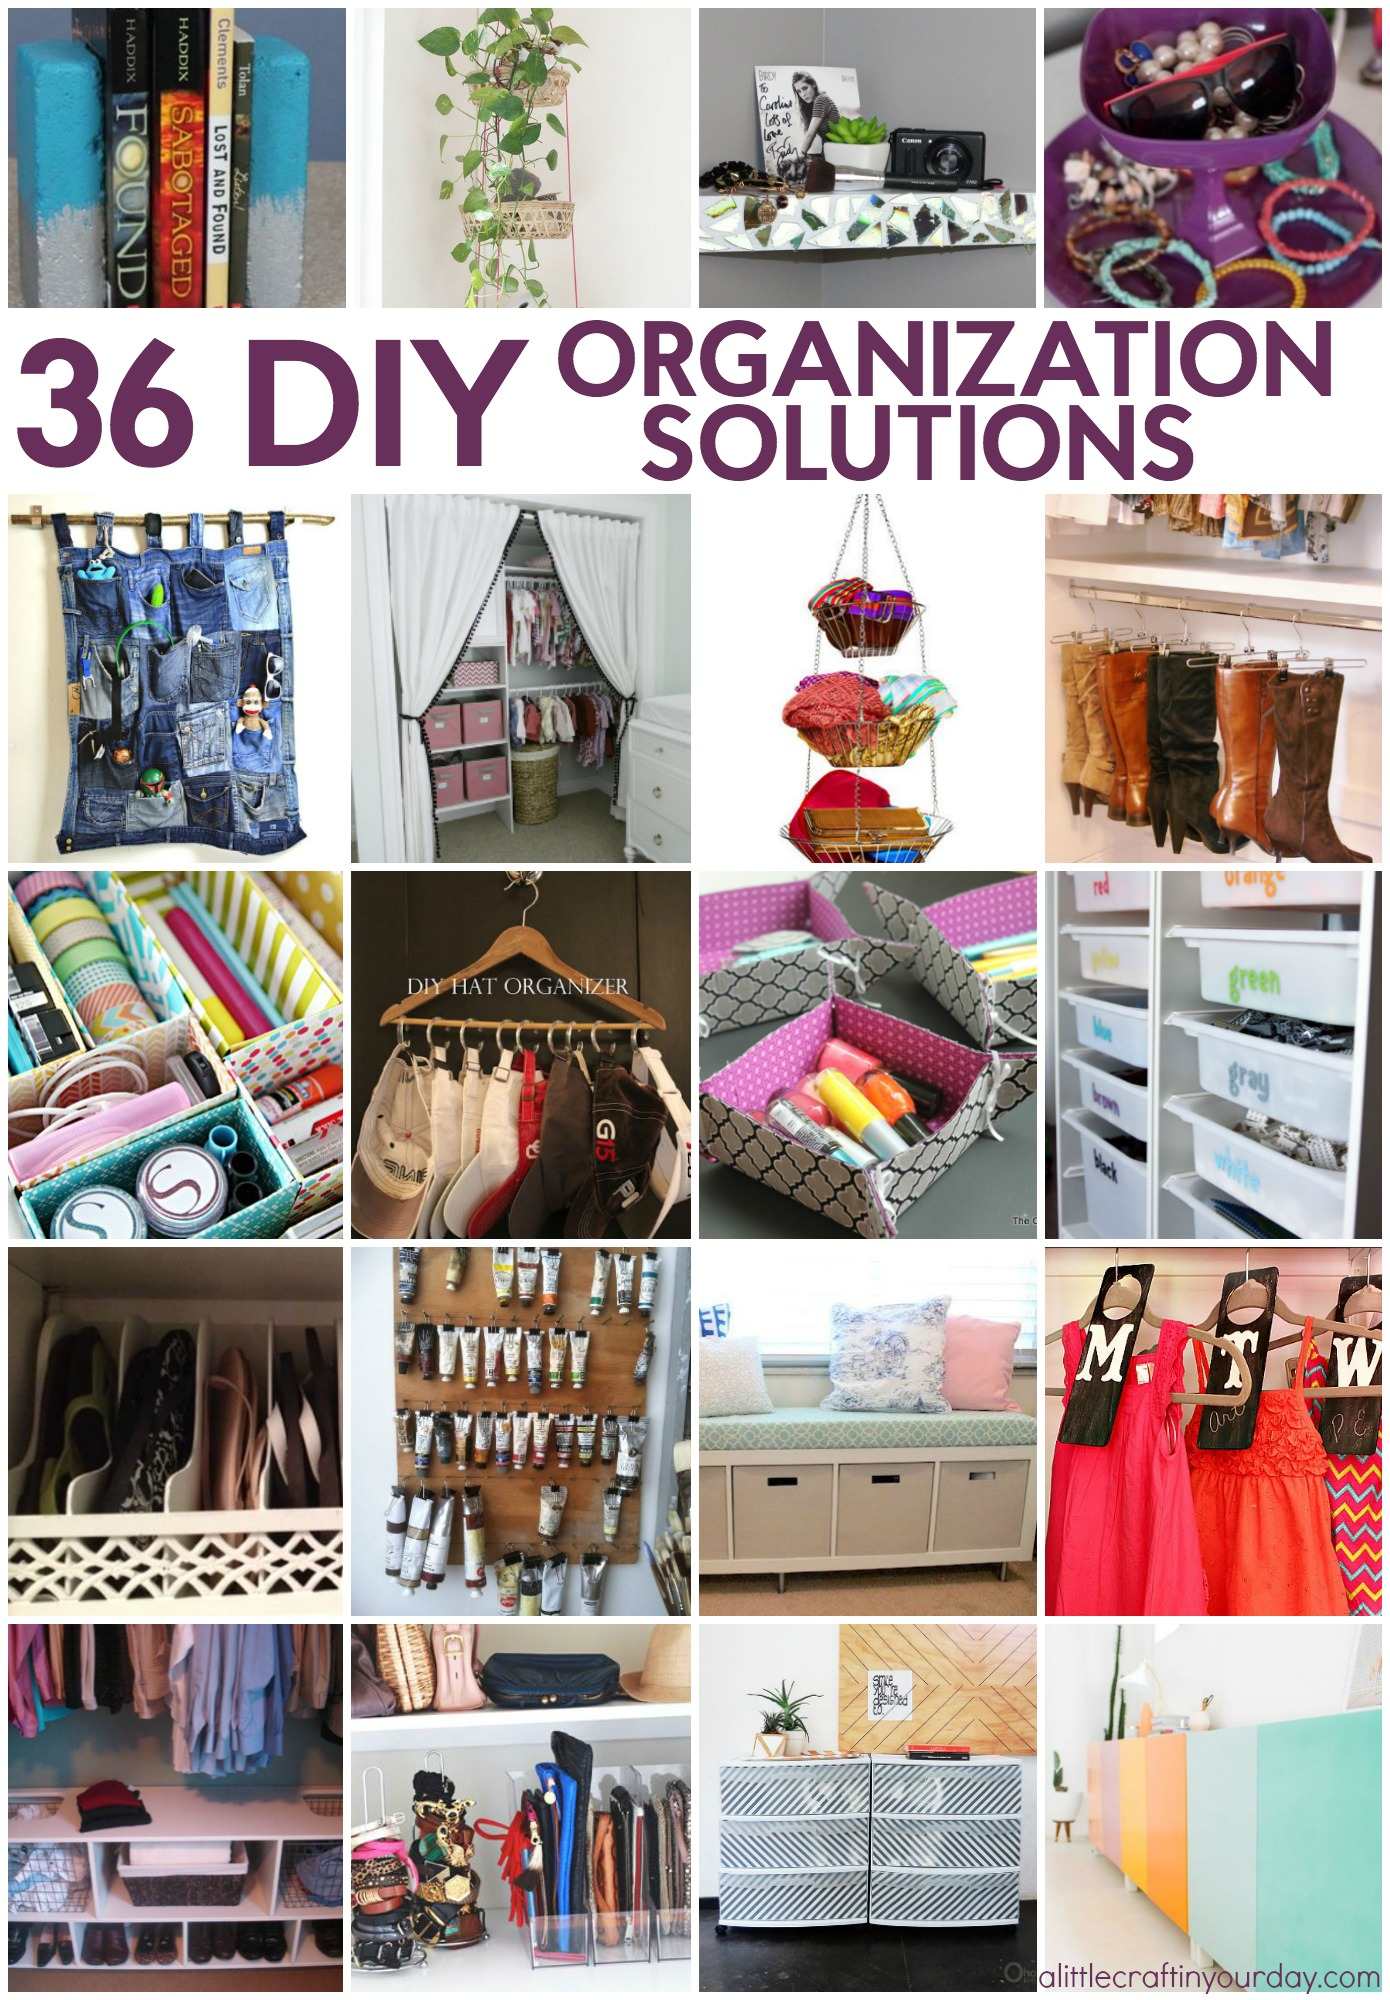 36 Diy Organization Solutions A Little Craft In Your Day